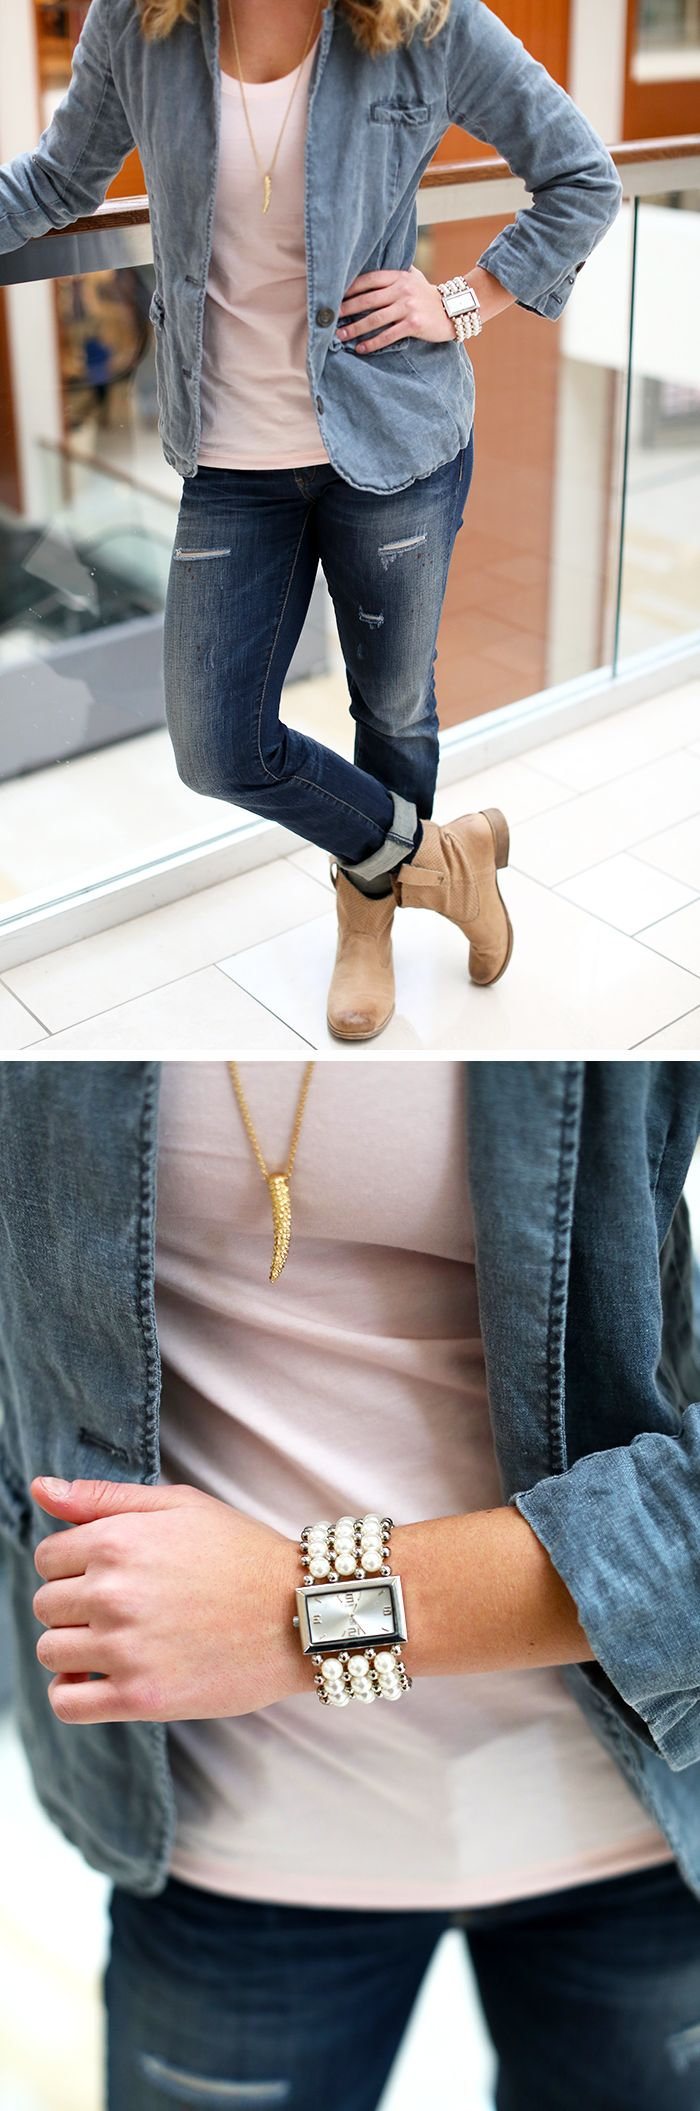 Sort of like this look, nice jeans and tank... like dangling necklaces, on the fence about this one